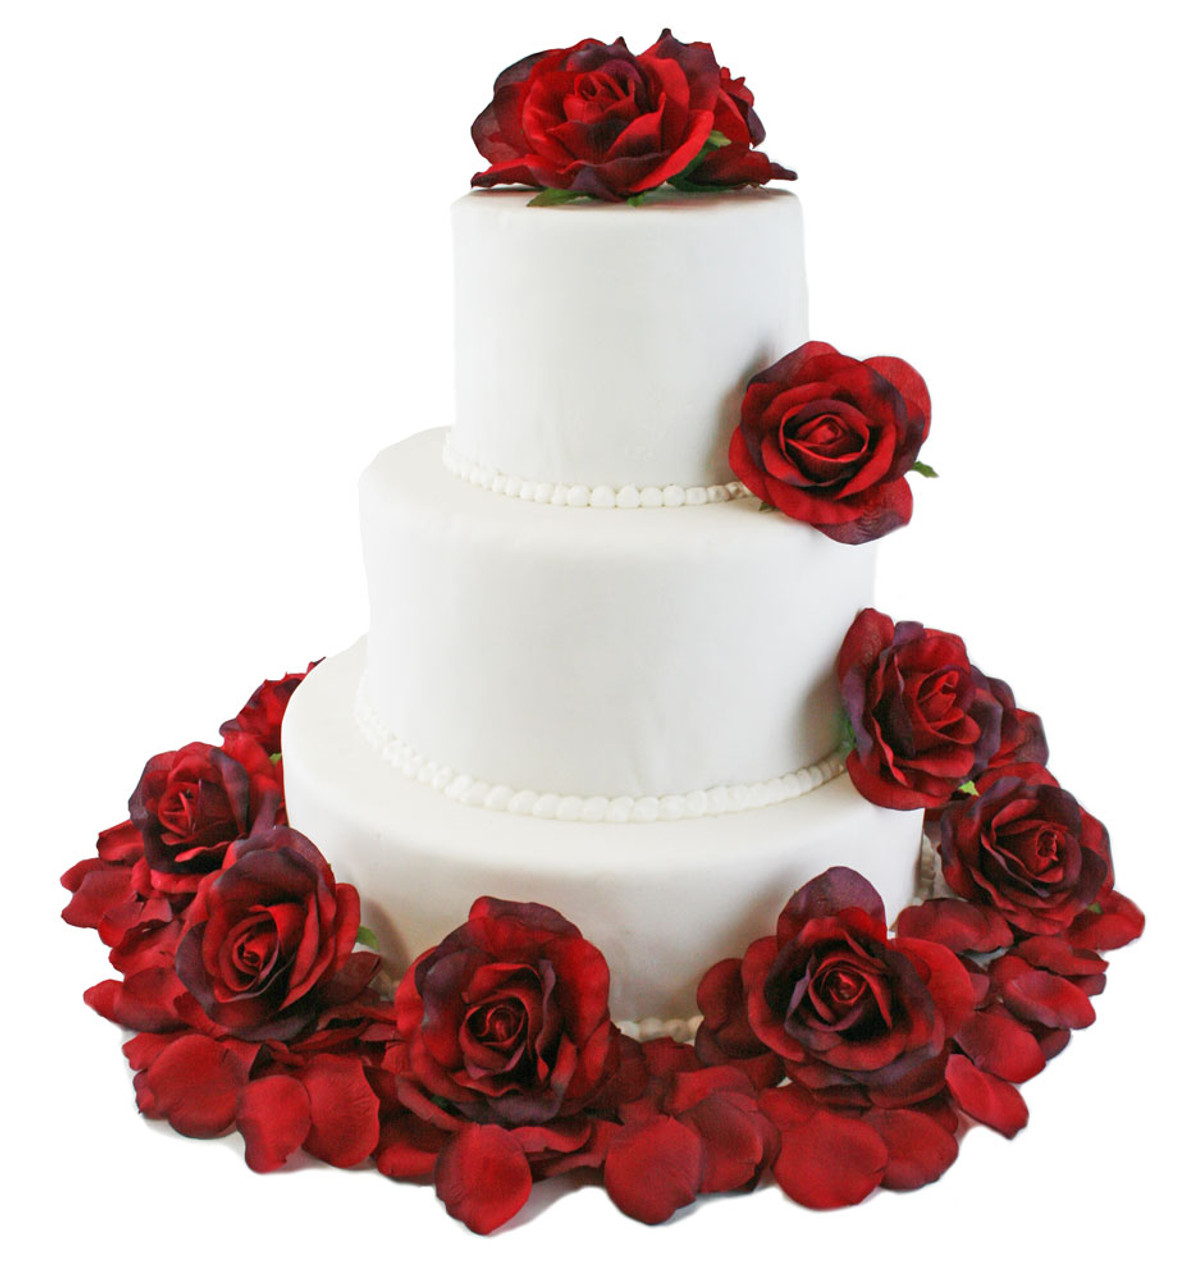 Red Rose Flower Cake Toppers Silk Flowers For Cake Wedding Cake Flowers Decorations Beautiful Wedding Cakes With Flowers